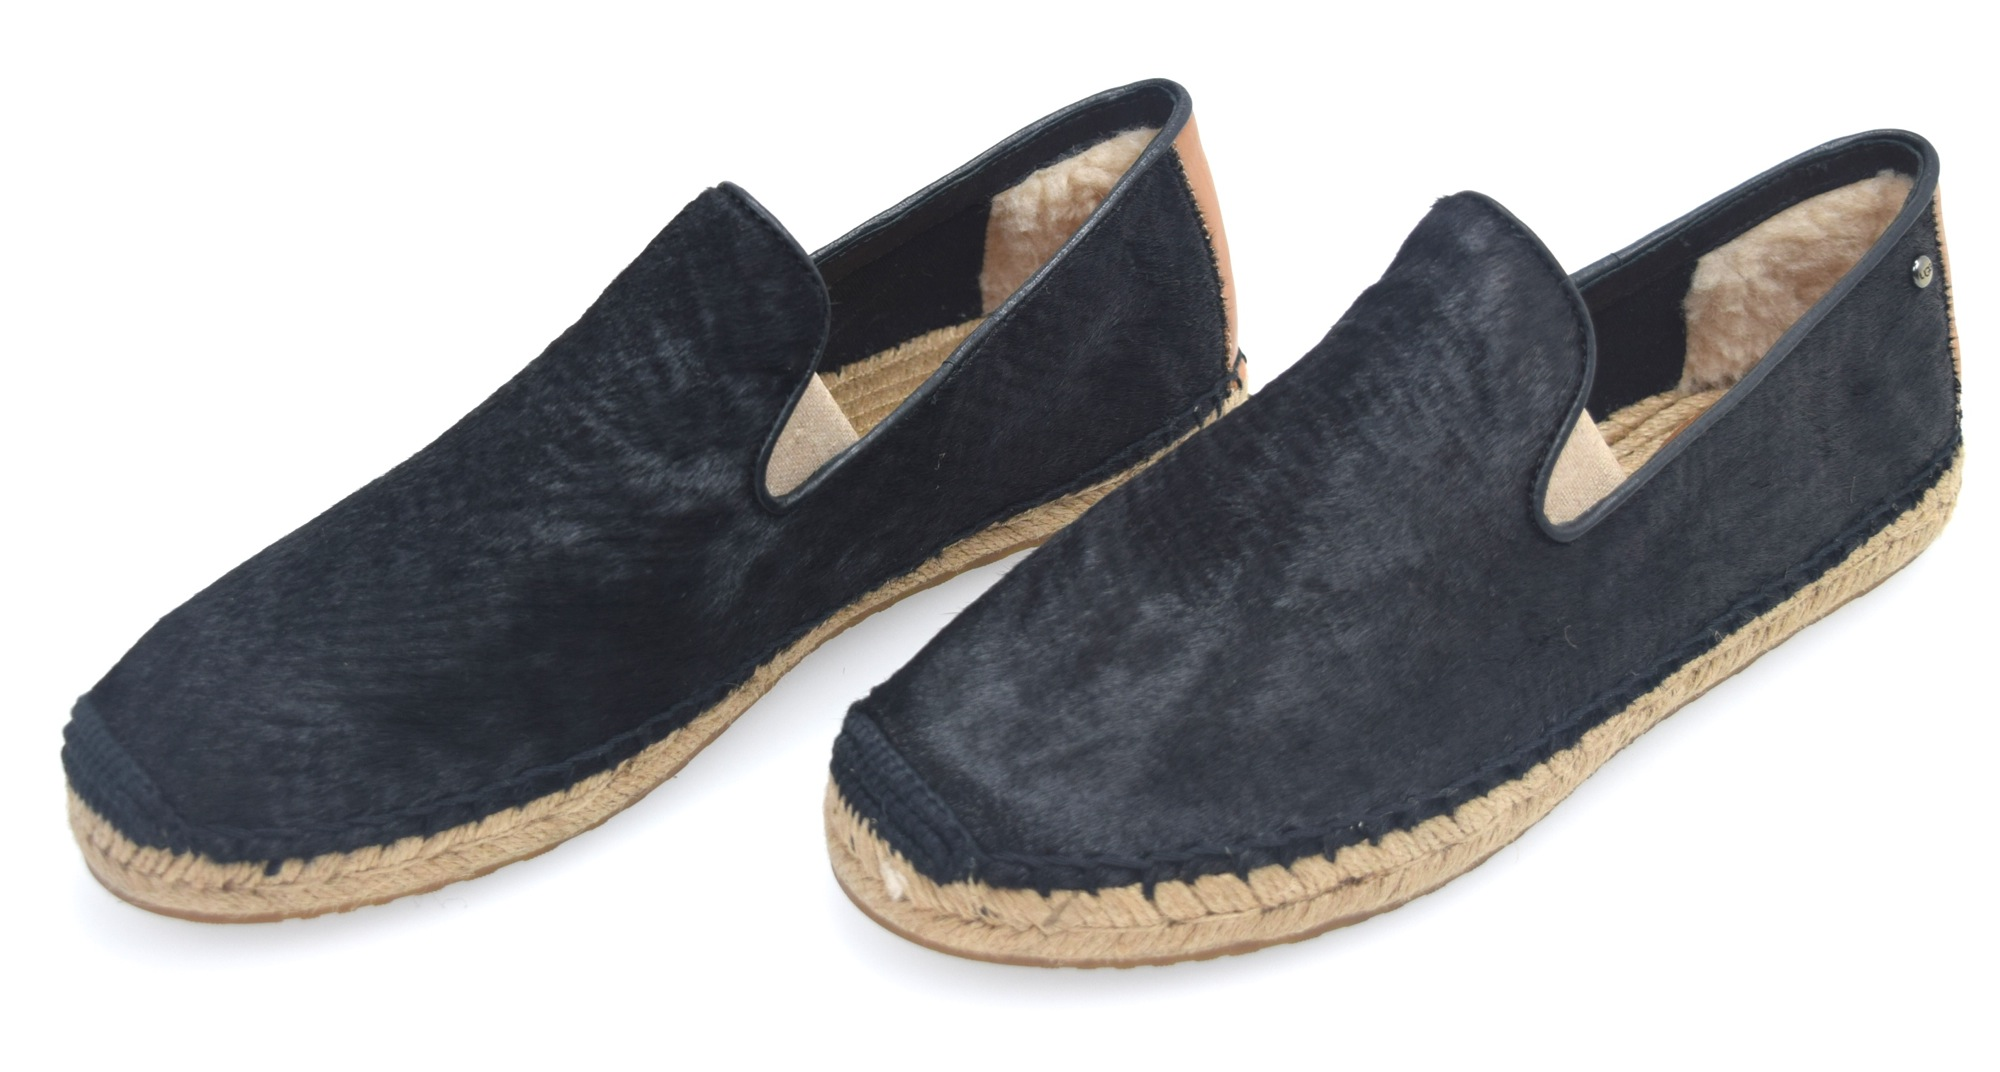 26d0b1eab18 Details about UGG AUSTRALIA WOMAN SNEAKER SLIP ON SHOES W RINNE CALF HAIR  SCALES 1007150